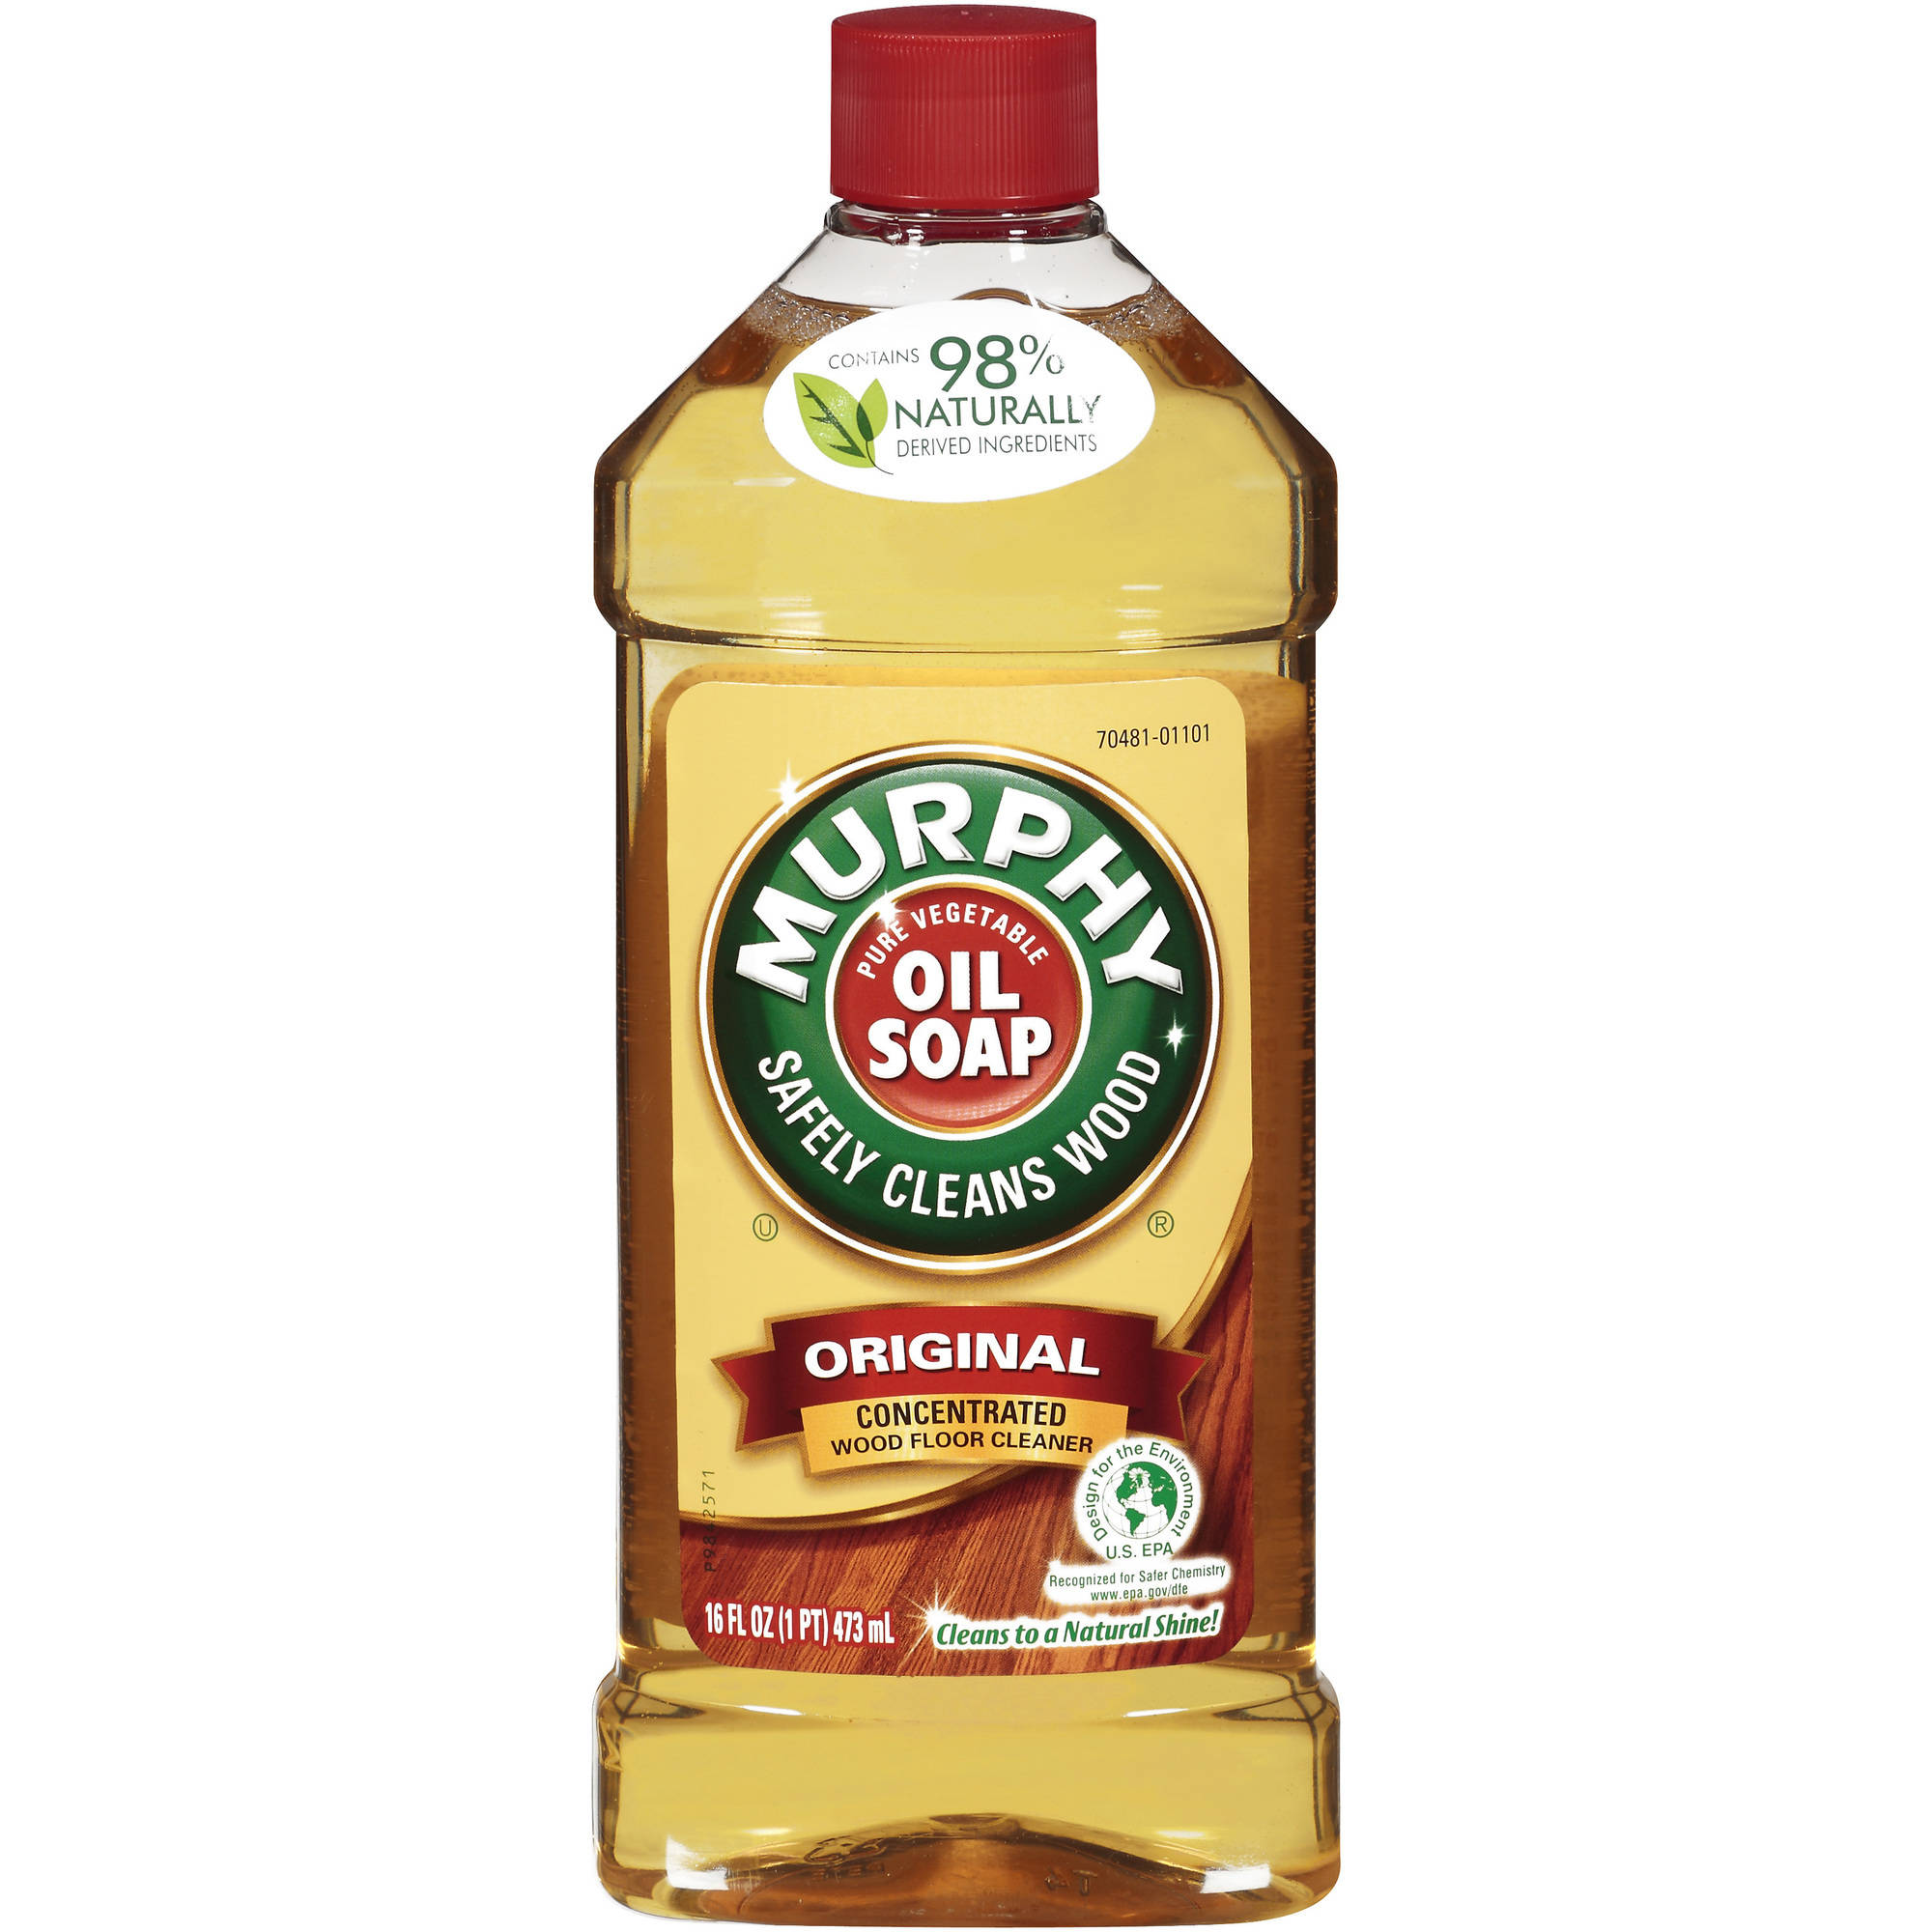 oil soap wood cleaner murphy original soap concentrated wood floor cleaner 3615